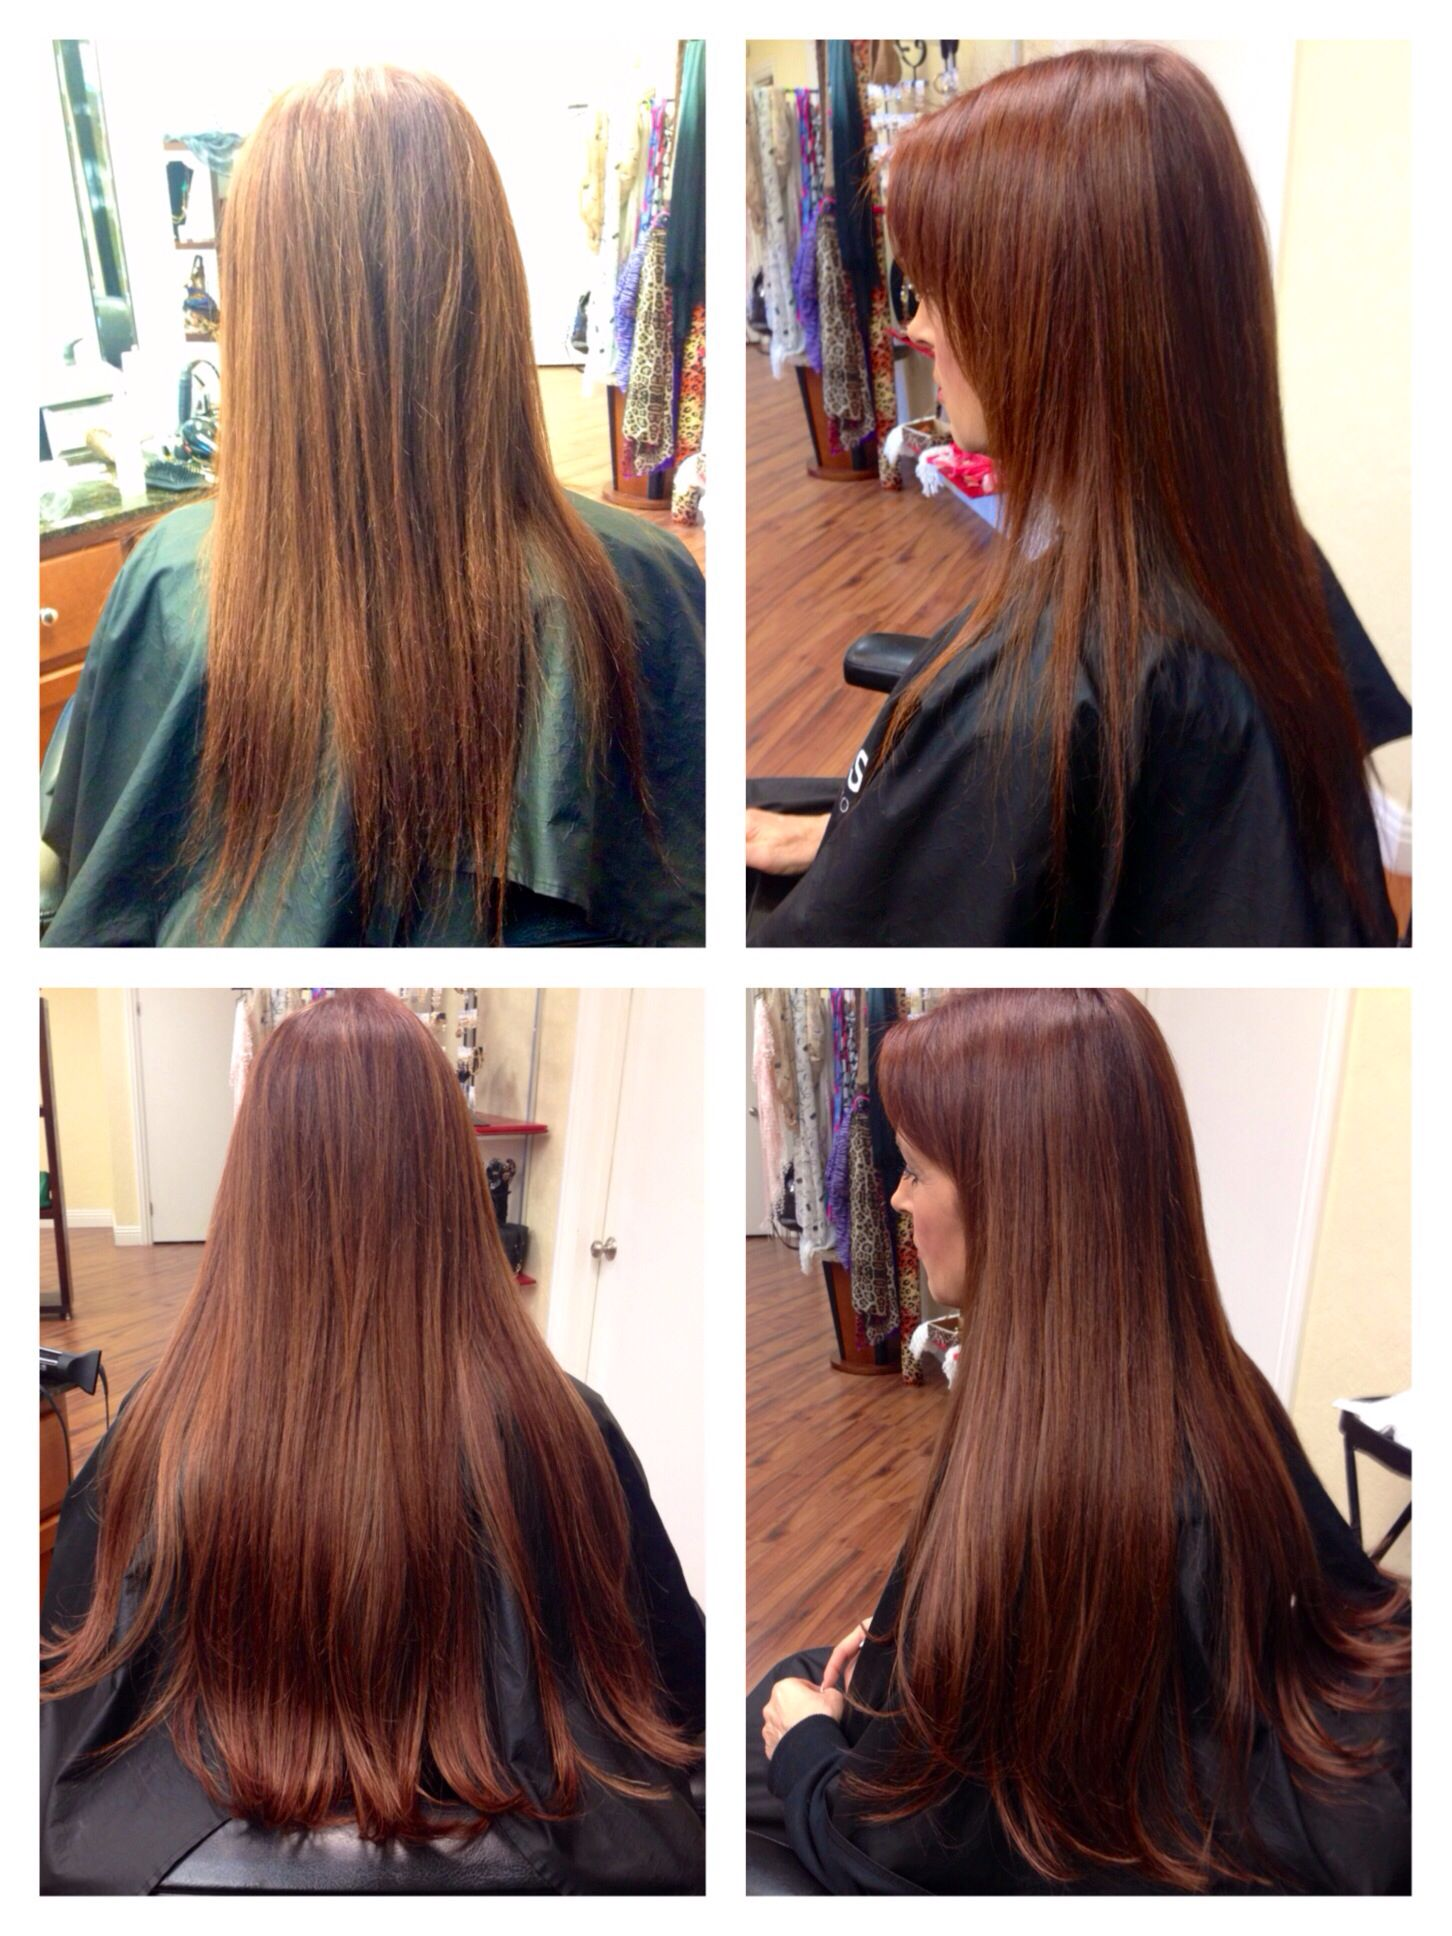 Before And After Tape Extensions 18 20 Inch Hair Extensions By